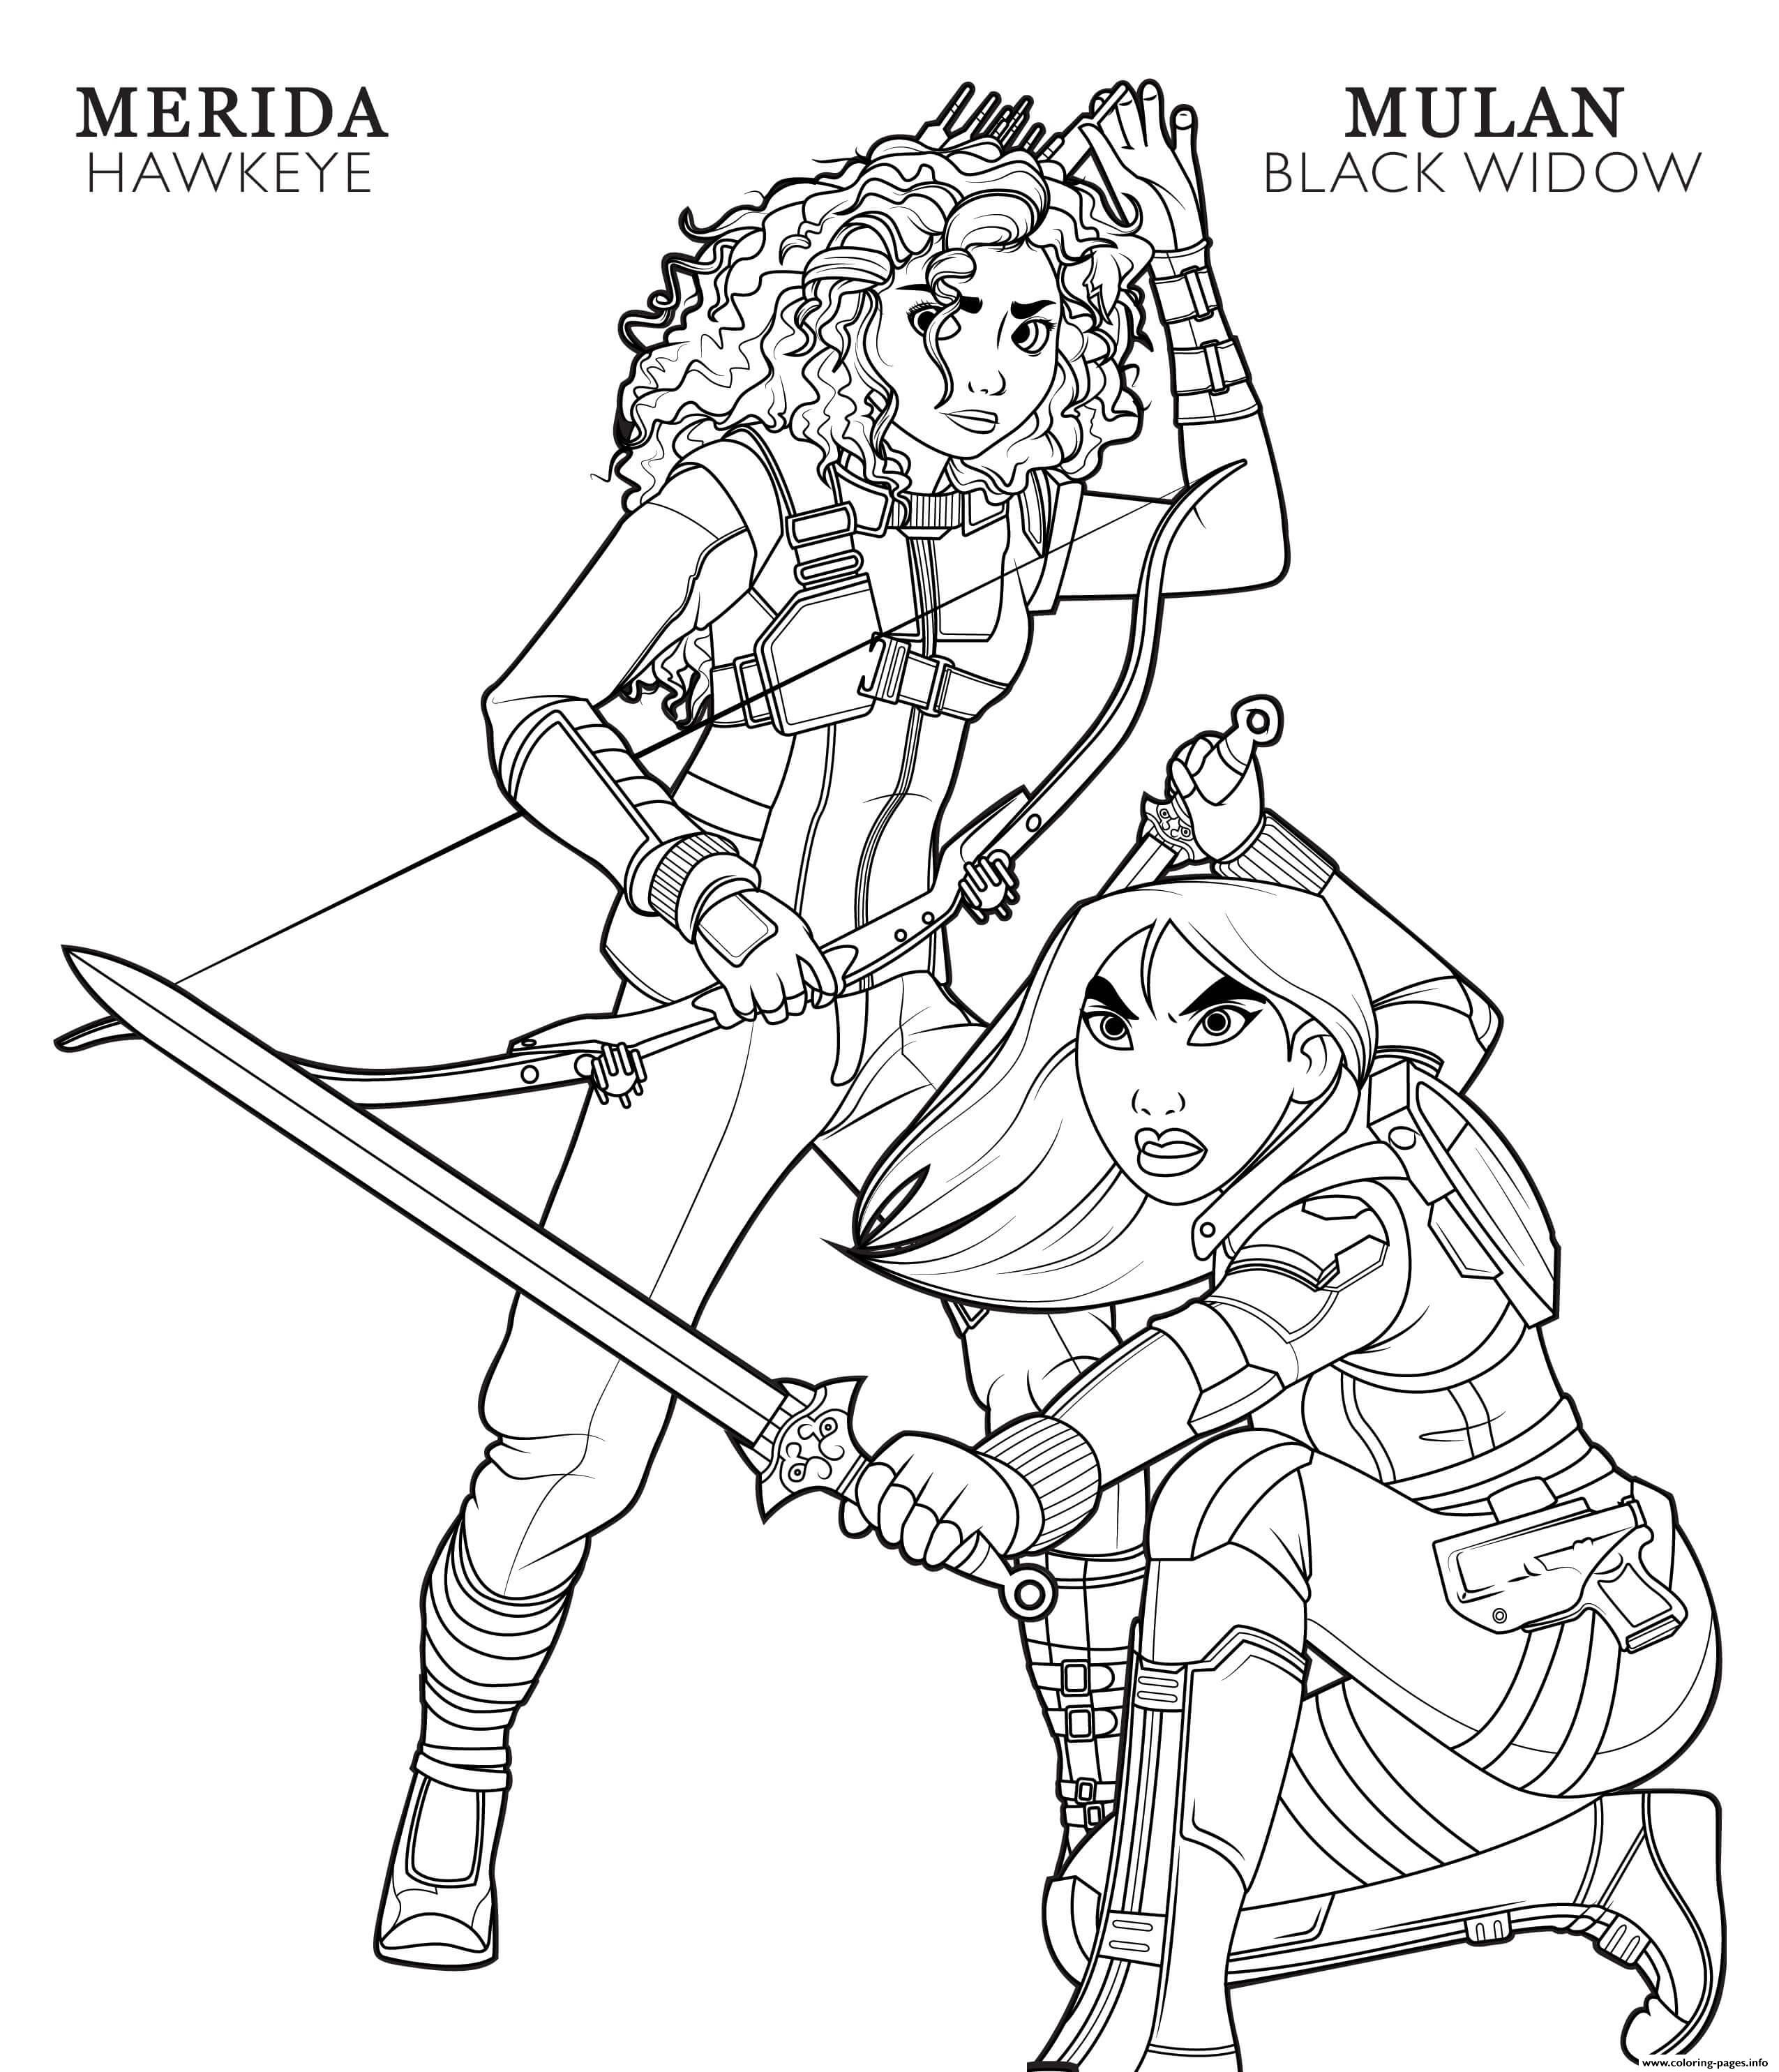 Hawkeye Merida And Black Widow Mulan Disney Avengers coloring pages